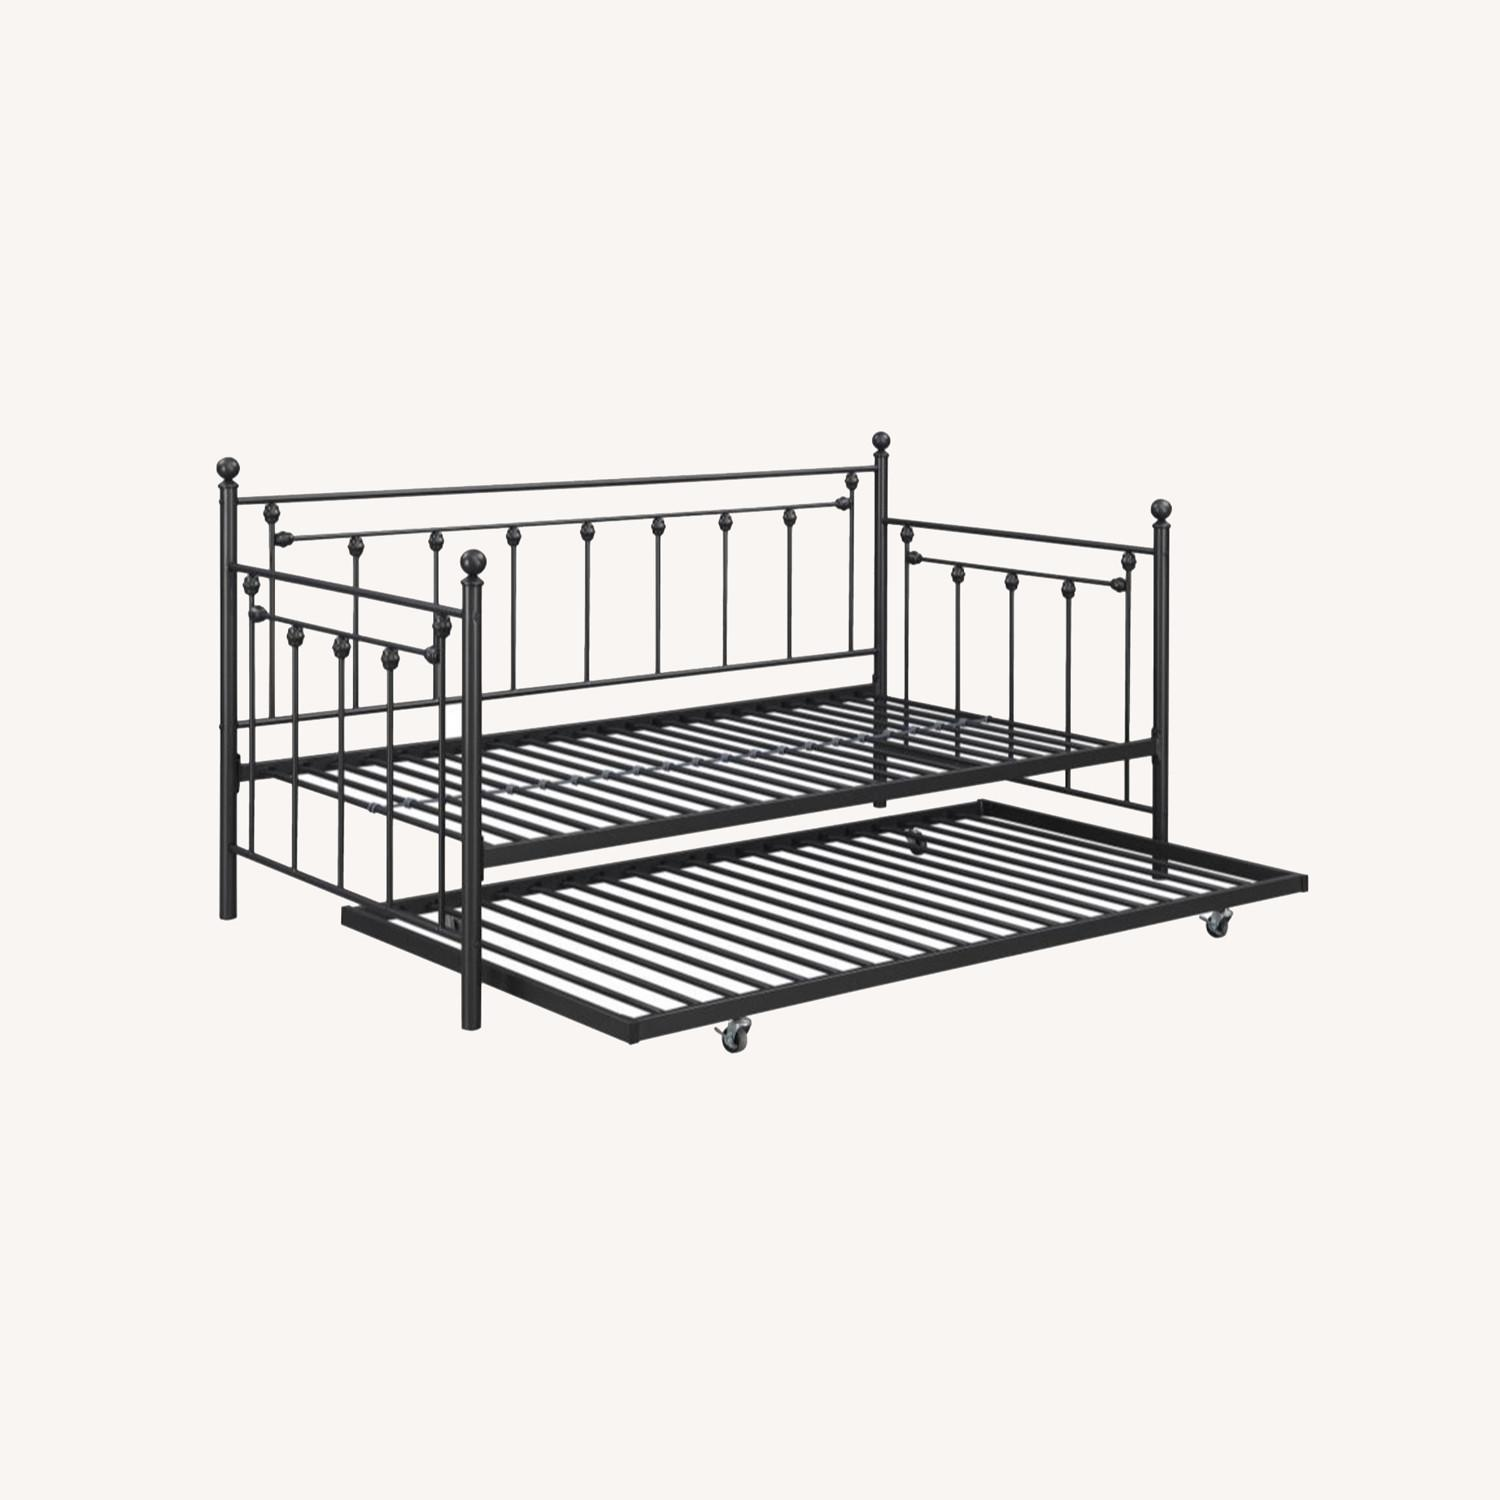 Daybed In Gunmetal Steel Finish W/ Trundle - image-4